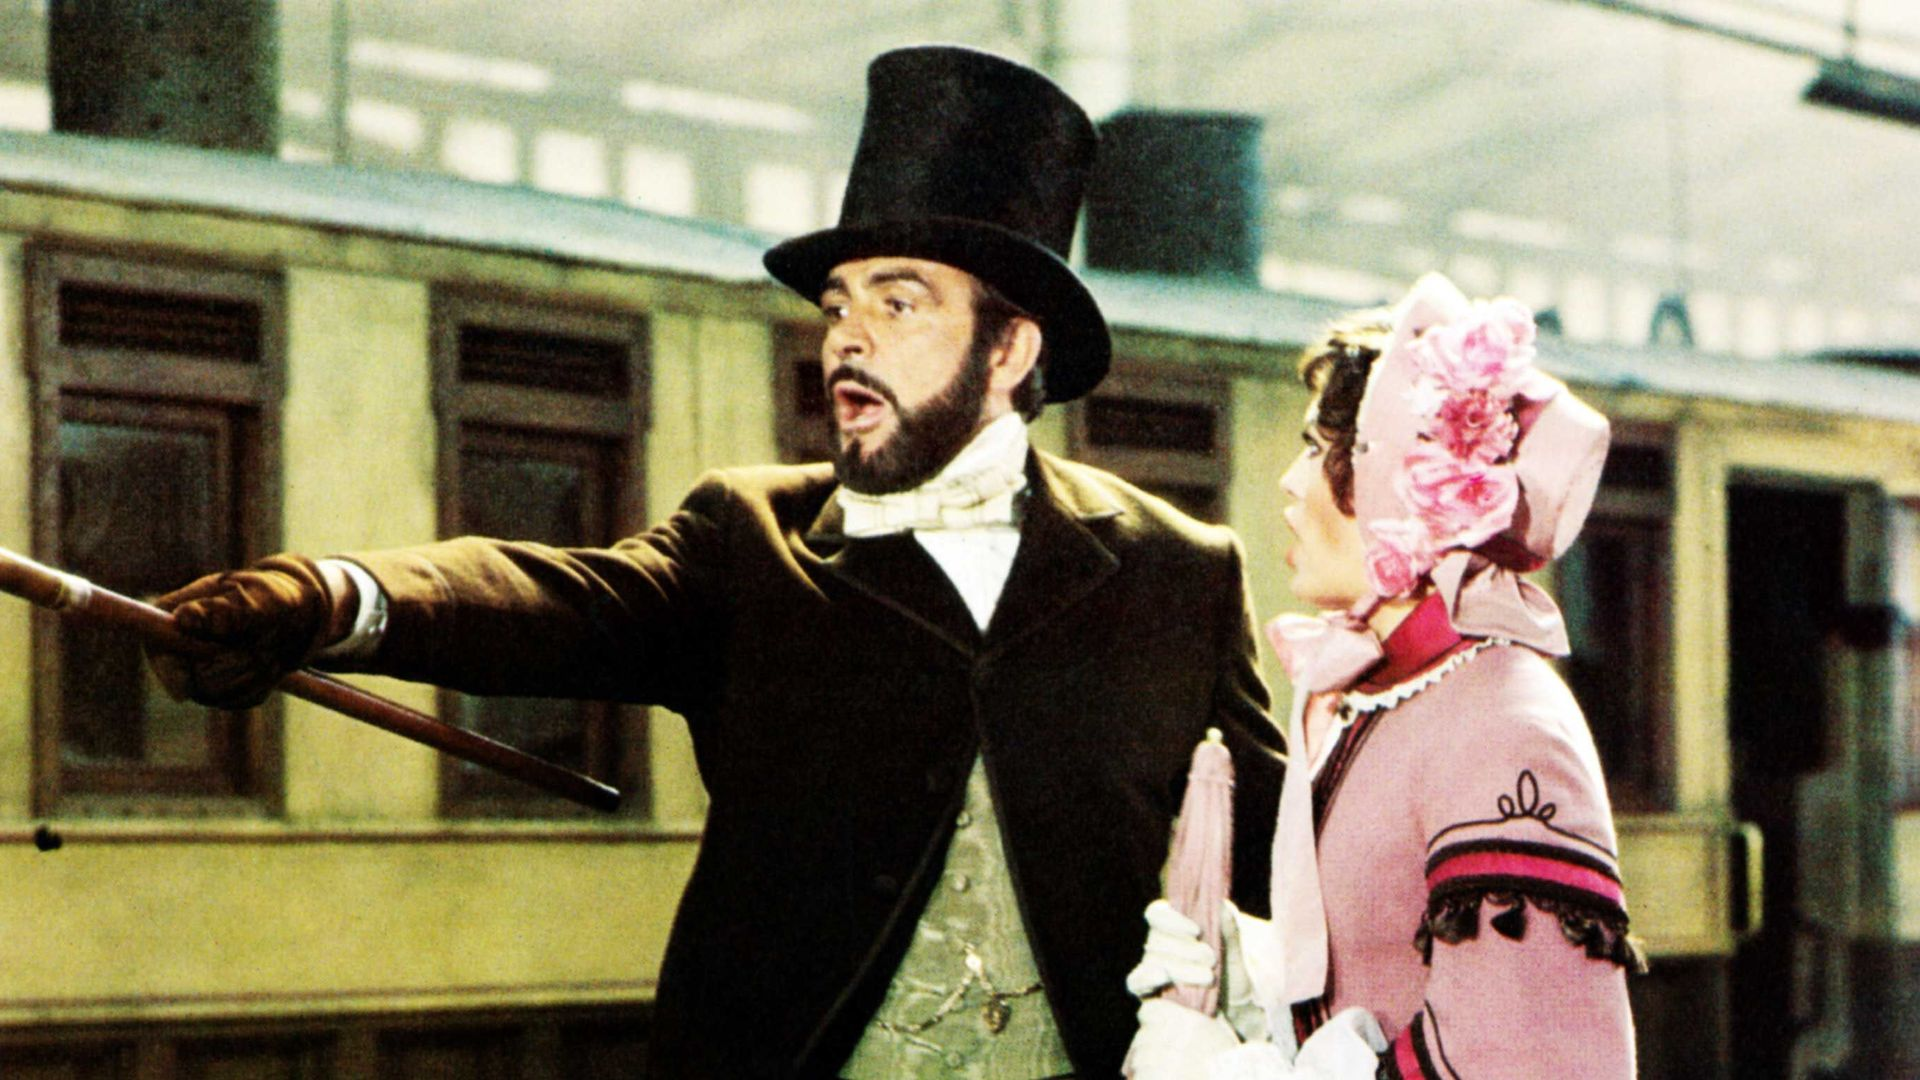 THE GREAT TRAIN ROBBERY, from left: Sean Connery, Lesley-Anne Down, 1979.